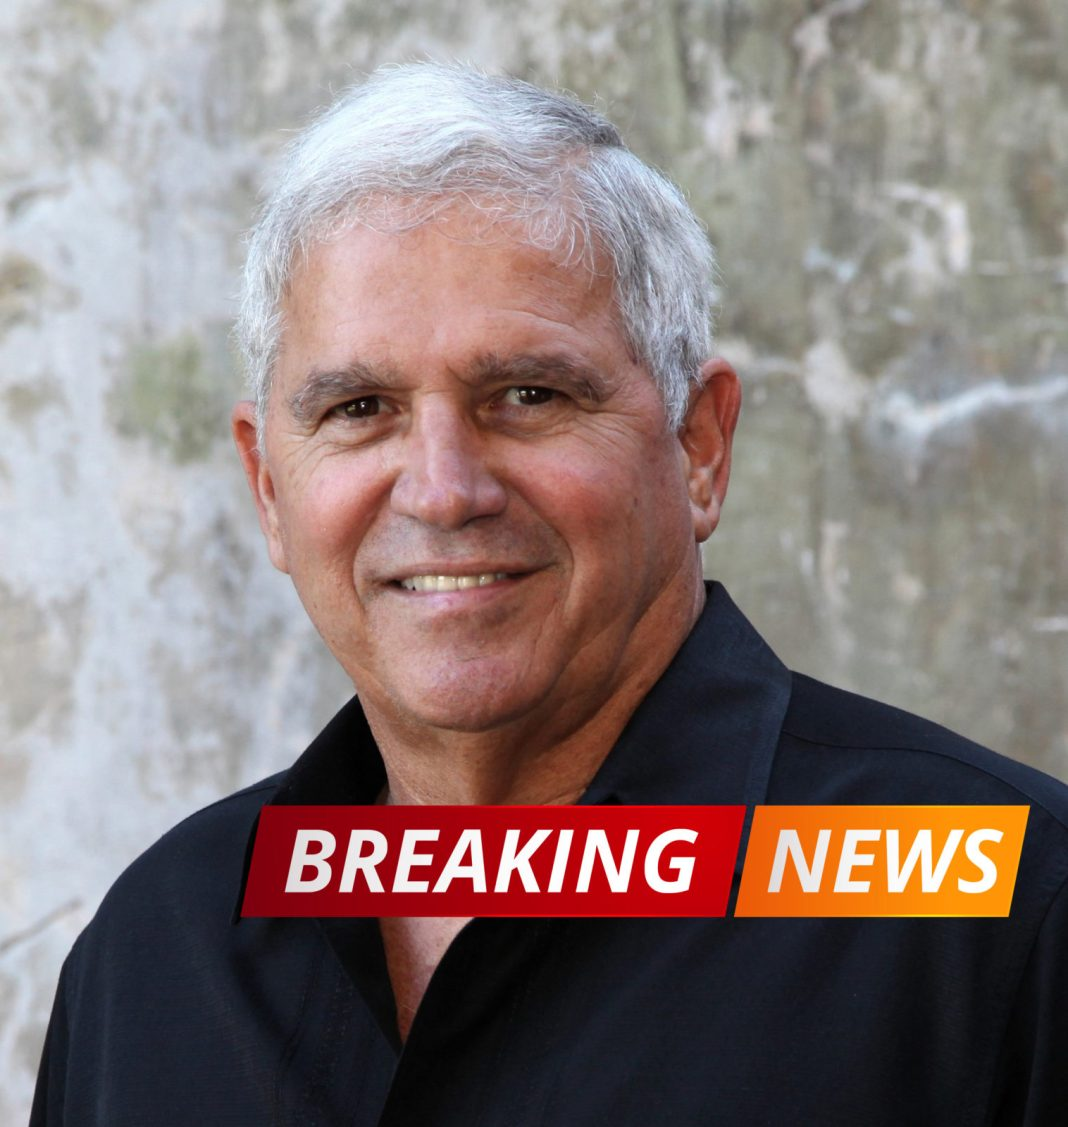 Governor appoints Cates to County Commission — Former Key West mayor to finish Kolhage's term - A man smiling for the camera - Key West Citizen